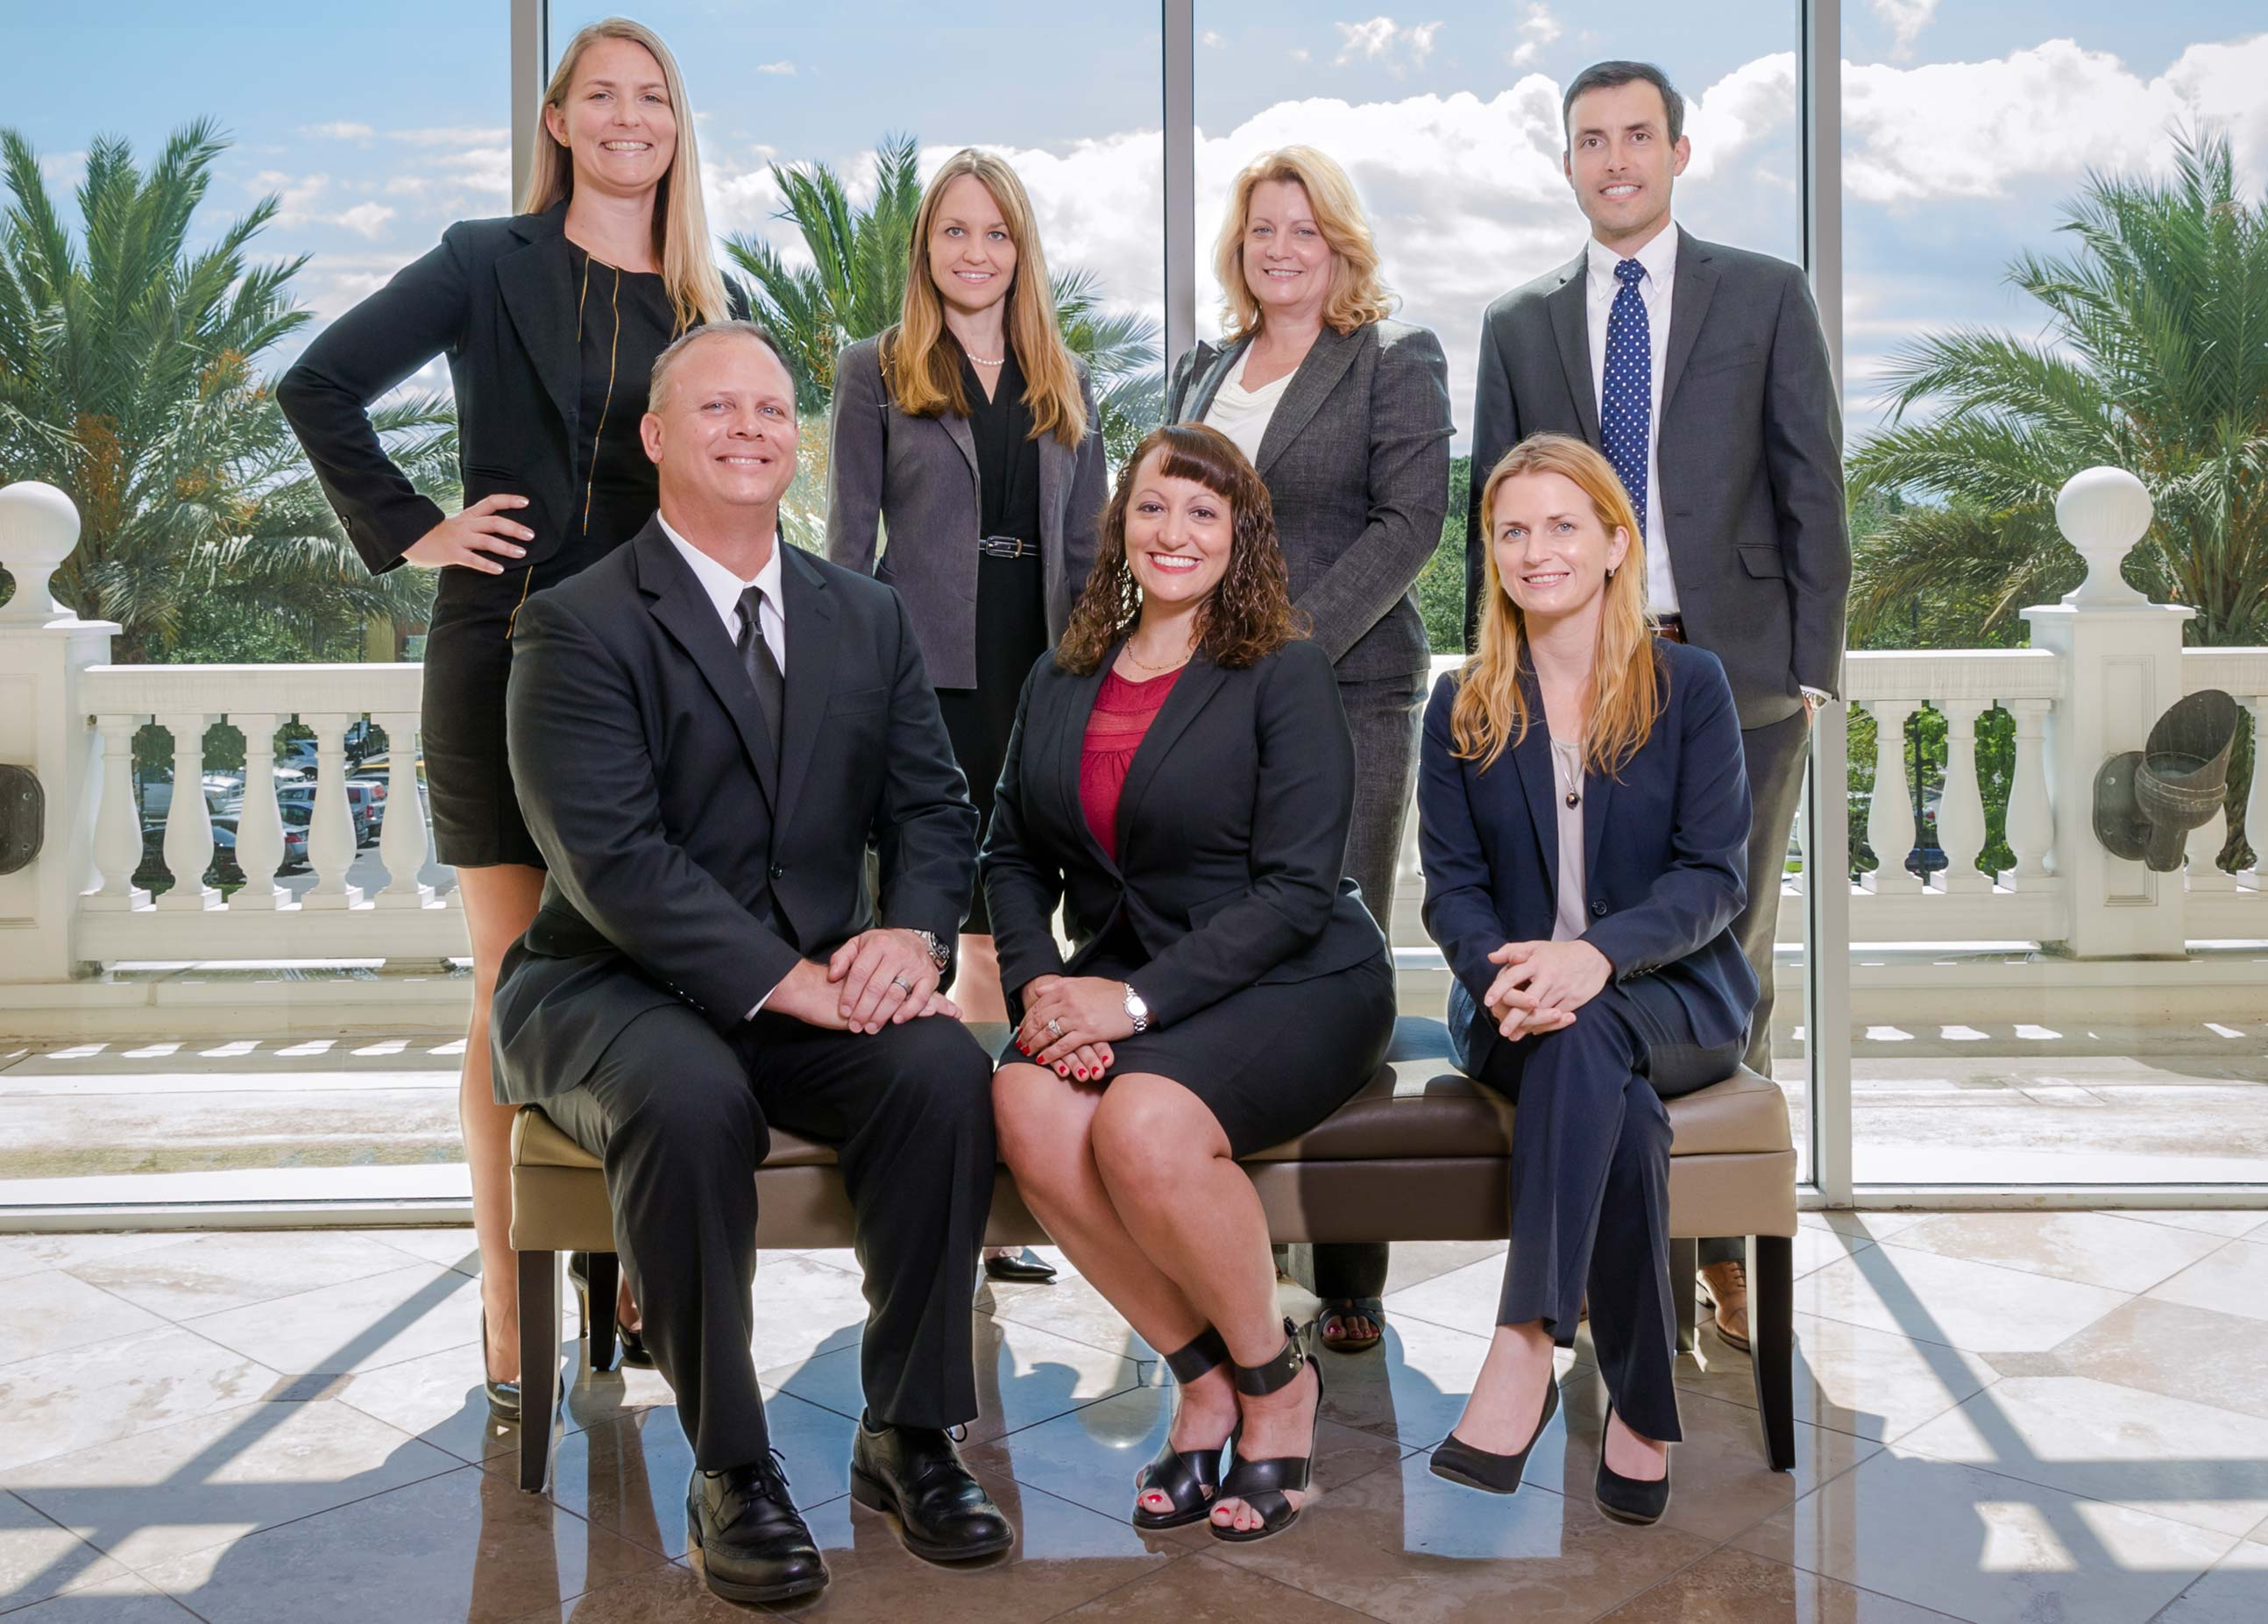 The Orlando Law Group: Raising the Bar in Central Florida